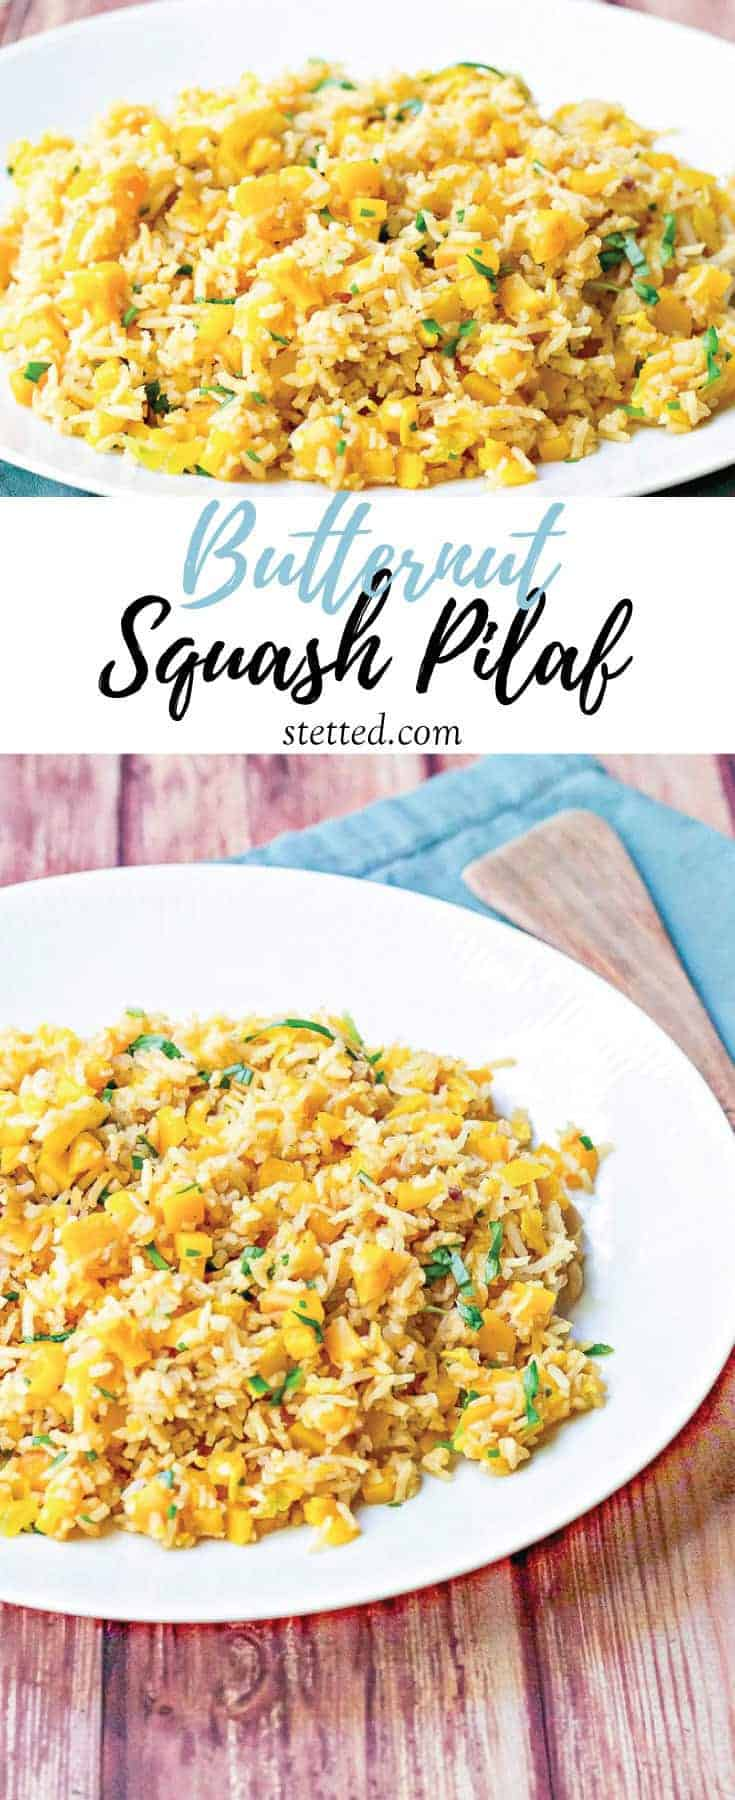 Butternut squash pilaf is a family-friendly side or main dish that comes together easily in one pan.